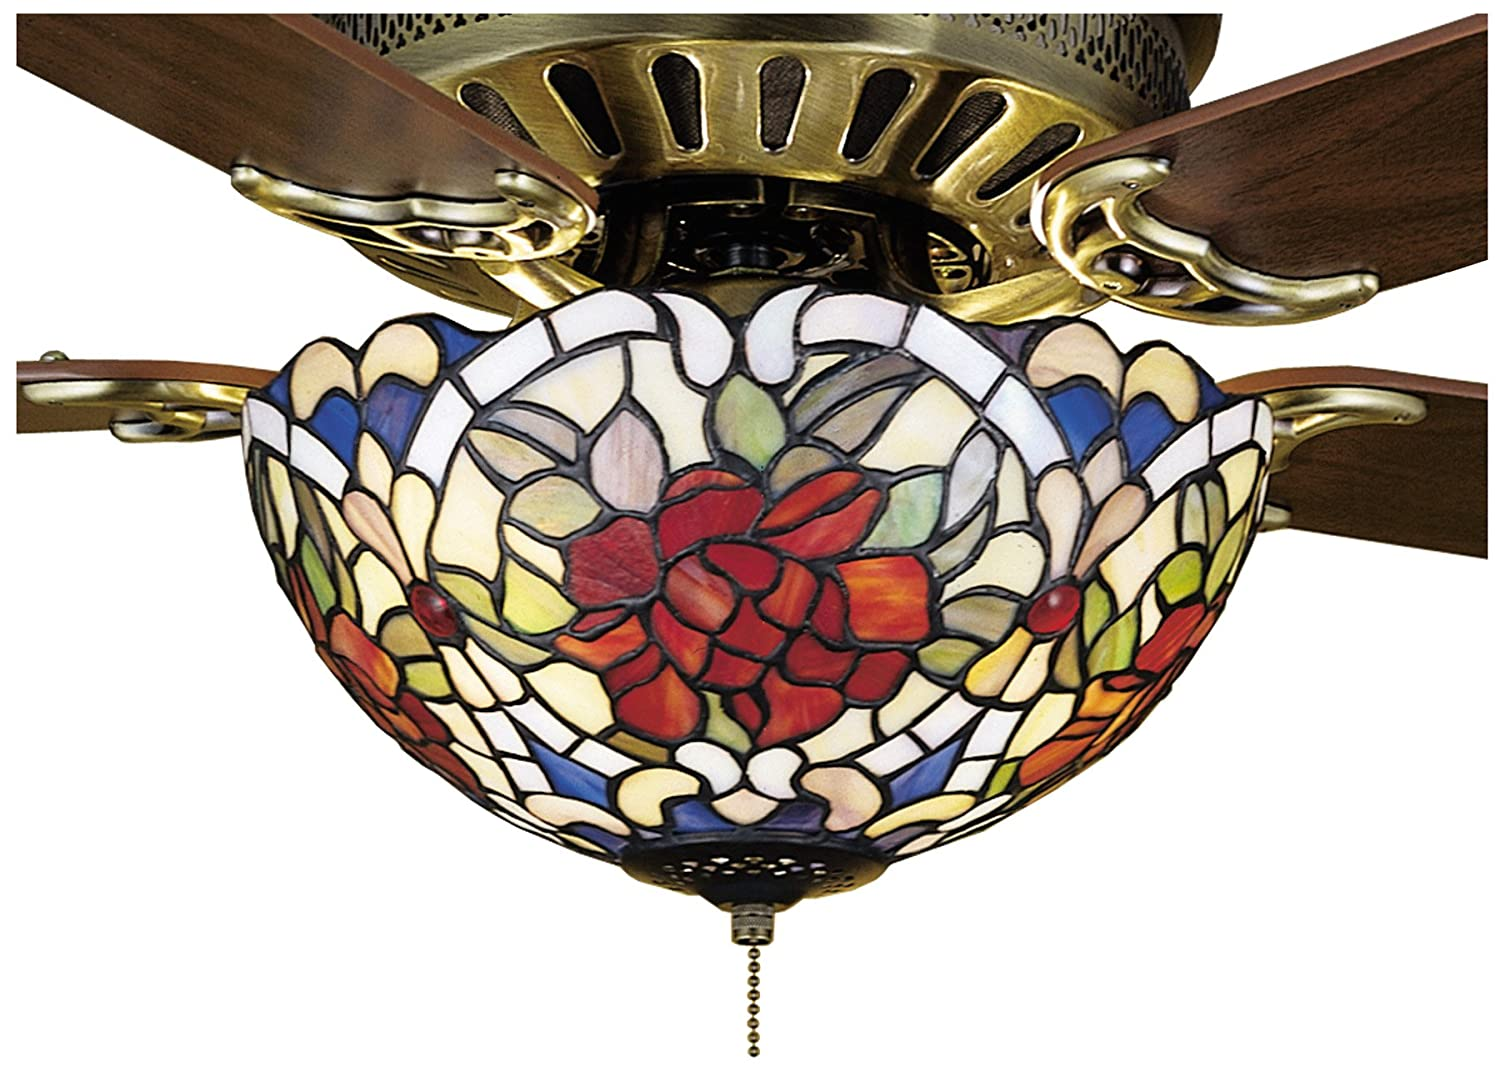 Tiffany renaissance 3 light ceiling fan light directional tiffany renaissance 3 light ceiling fan light directional spotlight ceiling fixtures amazon aloadofball Gallery